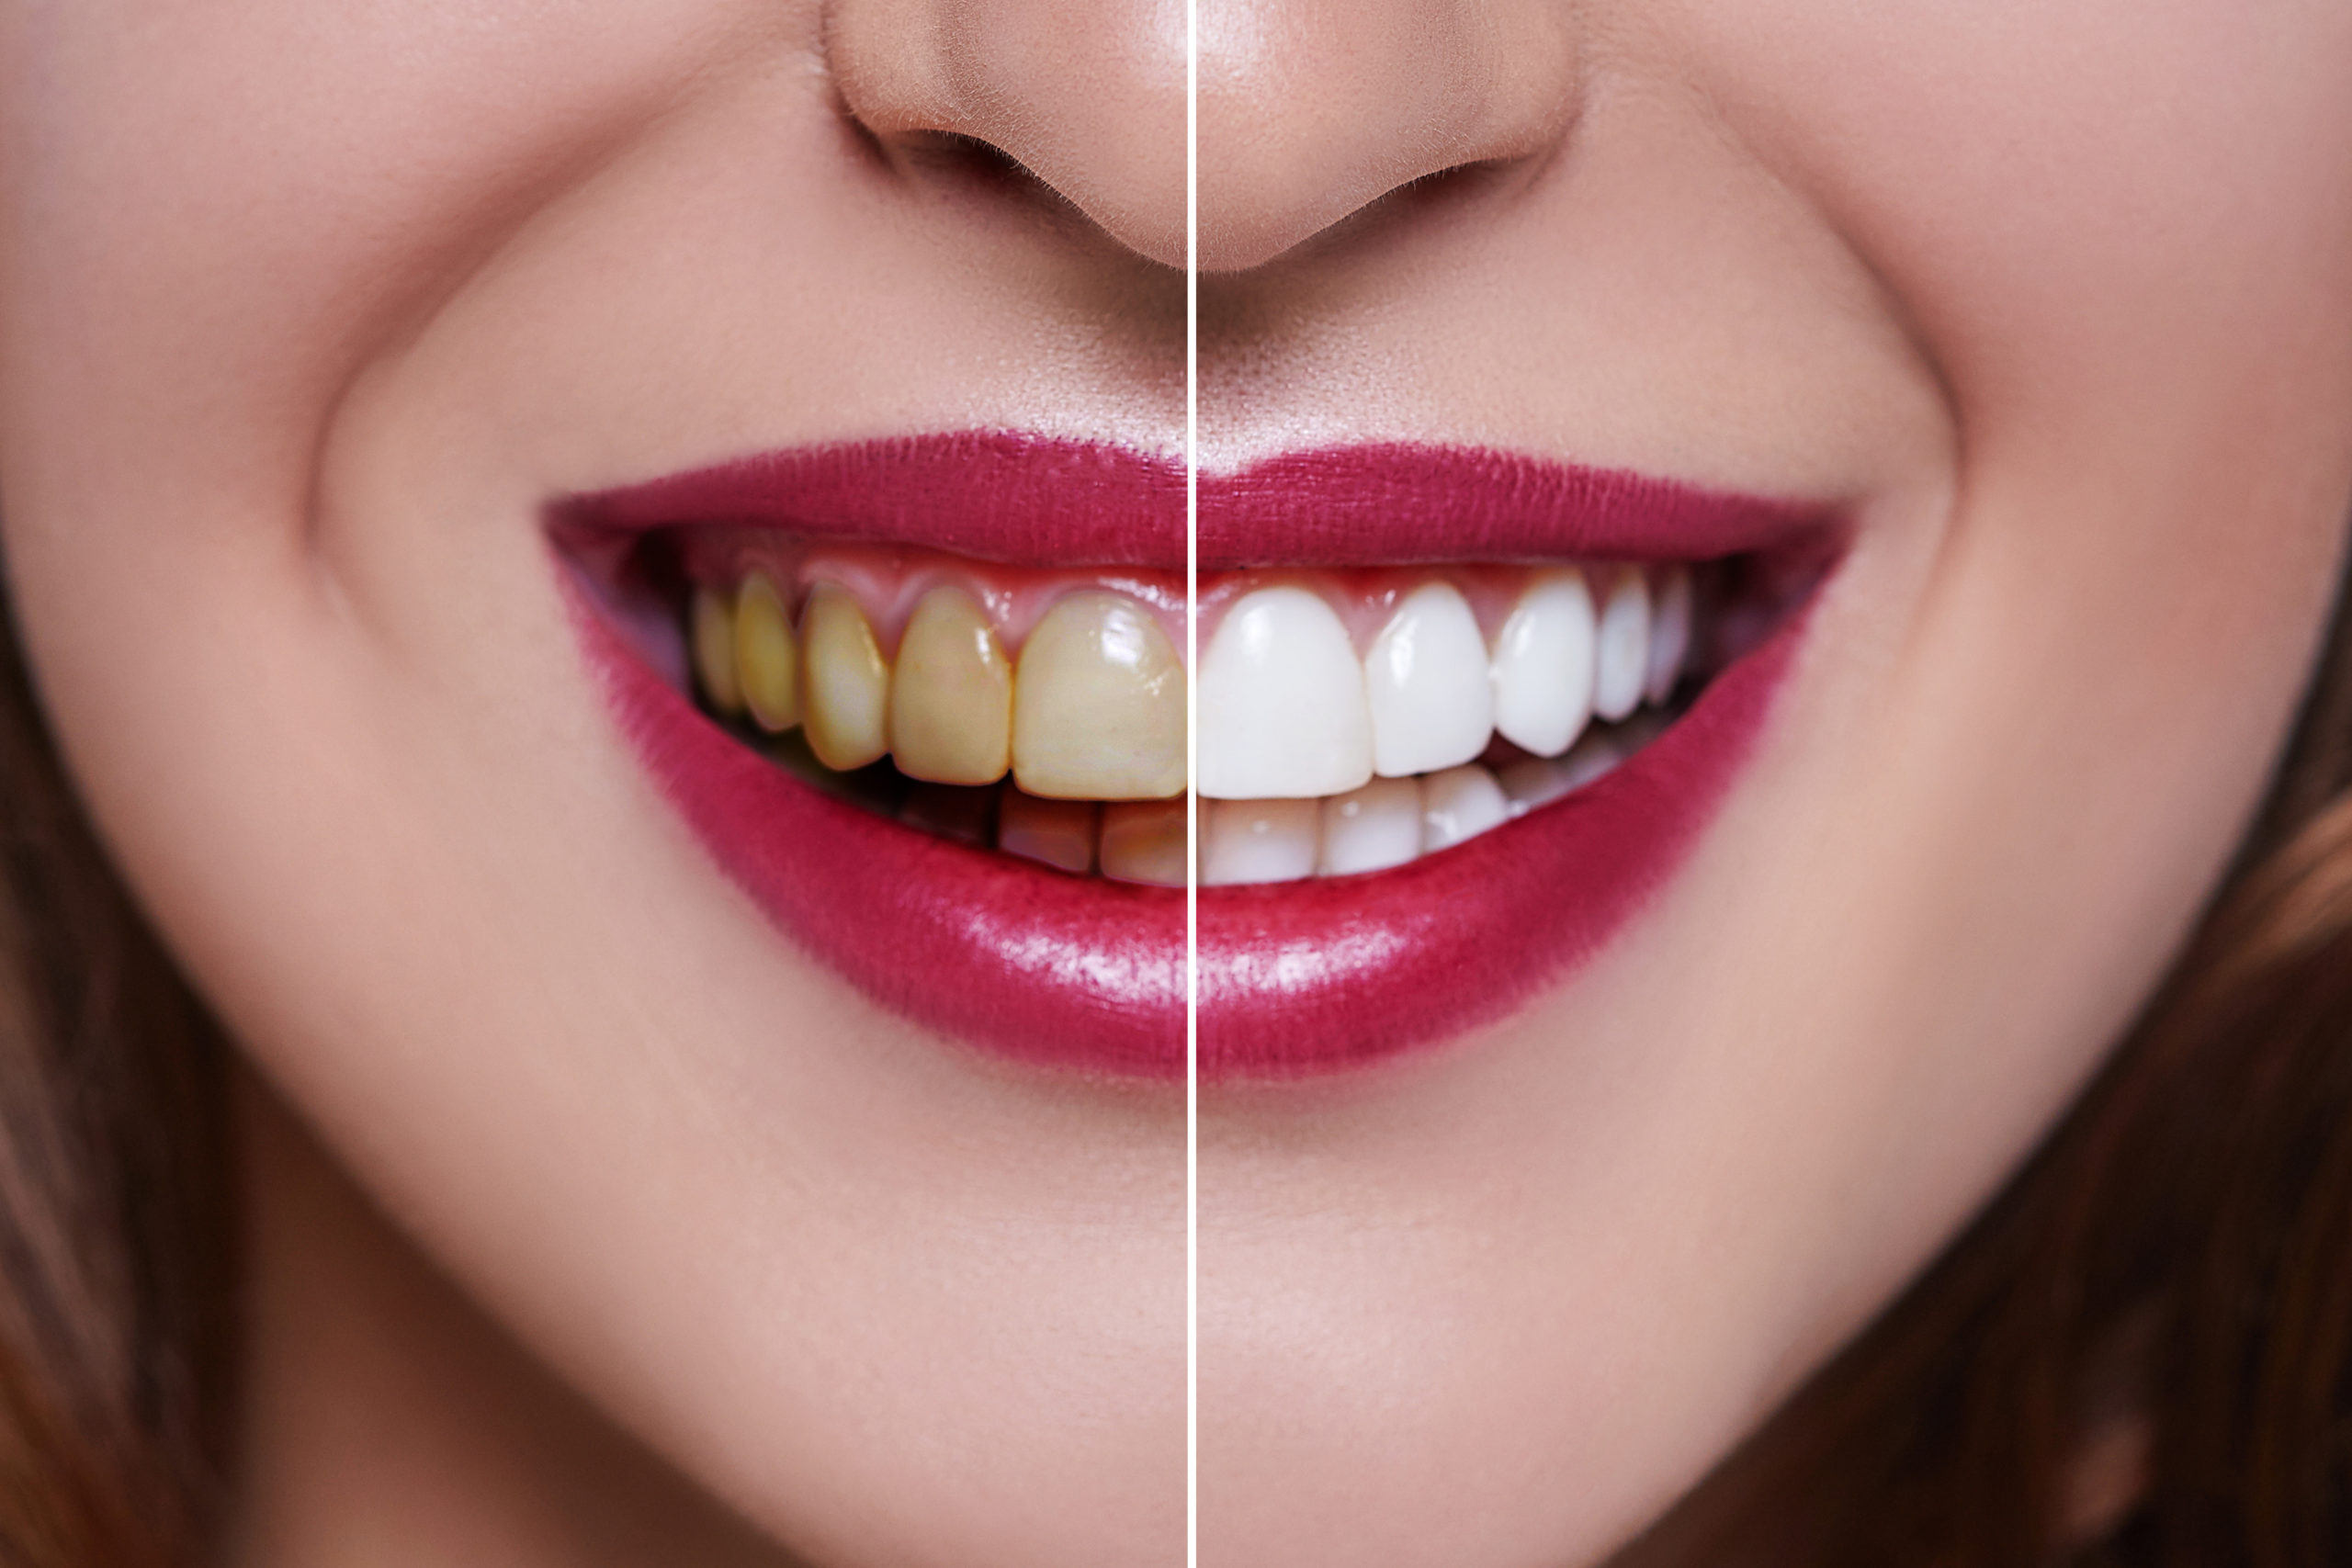 How long do veneers last? Hint: it depends on the material